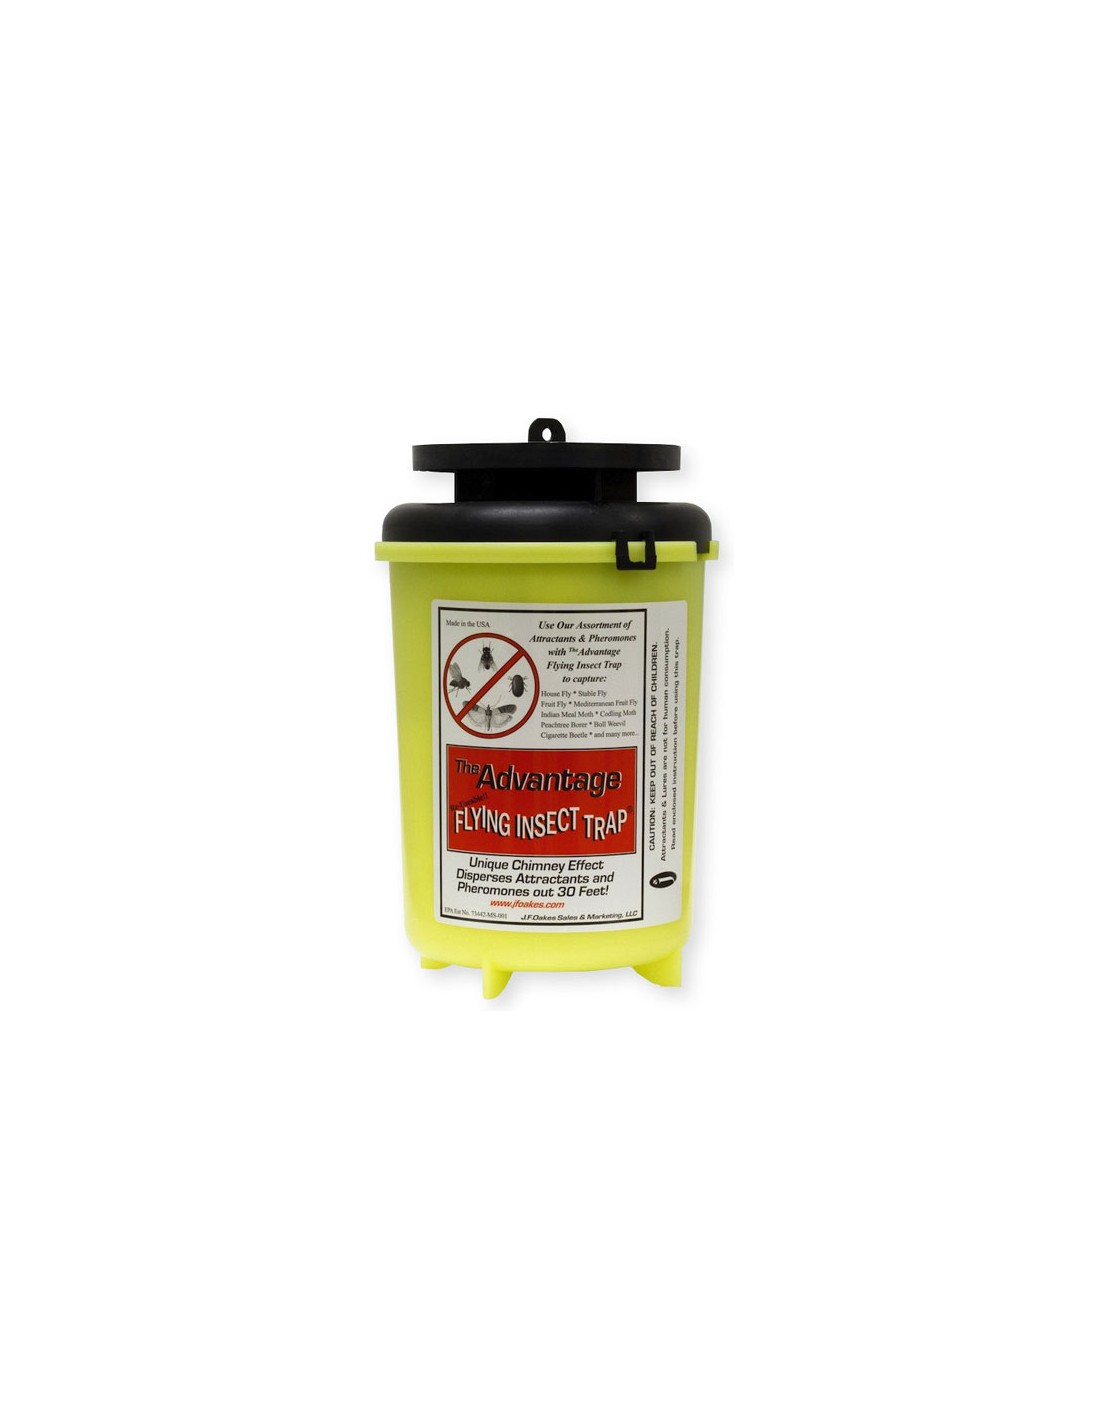 Advantage Flying Insect Trap Questions & Answers